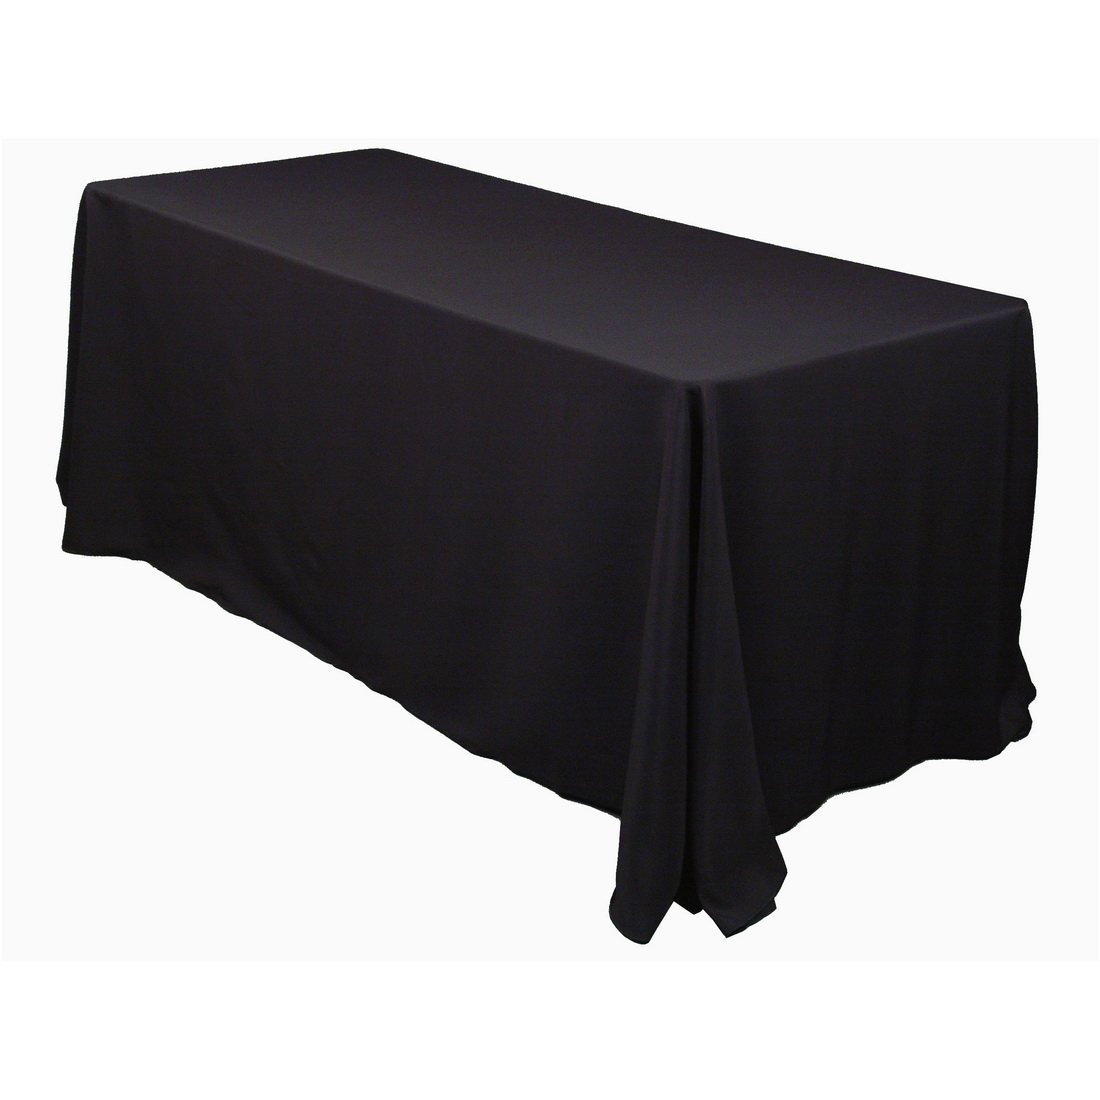 Gee Di Moda Rectangle Tablecloth - 90 x 132'' Inch - Black Rectangular Table Cloth for 6 Foot Table in Washable Polyester - Great for Buffet Table, Parties, Holiday Dinner, Wedding & More by Gee Di Moda (Image #2)